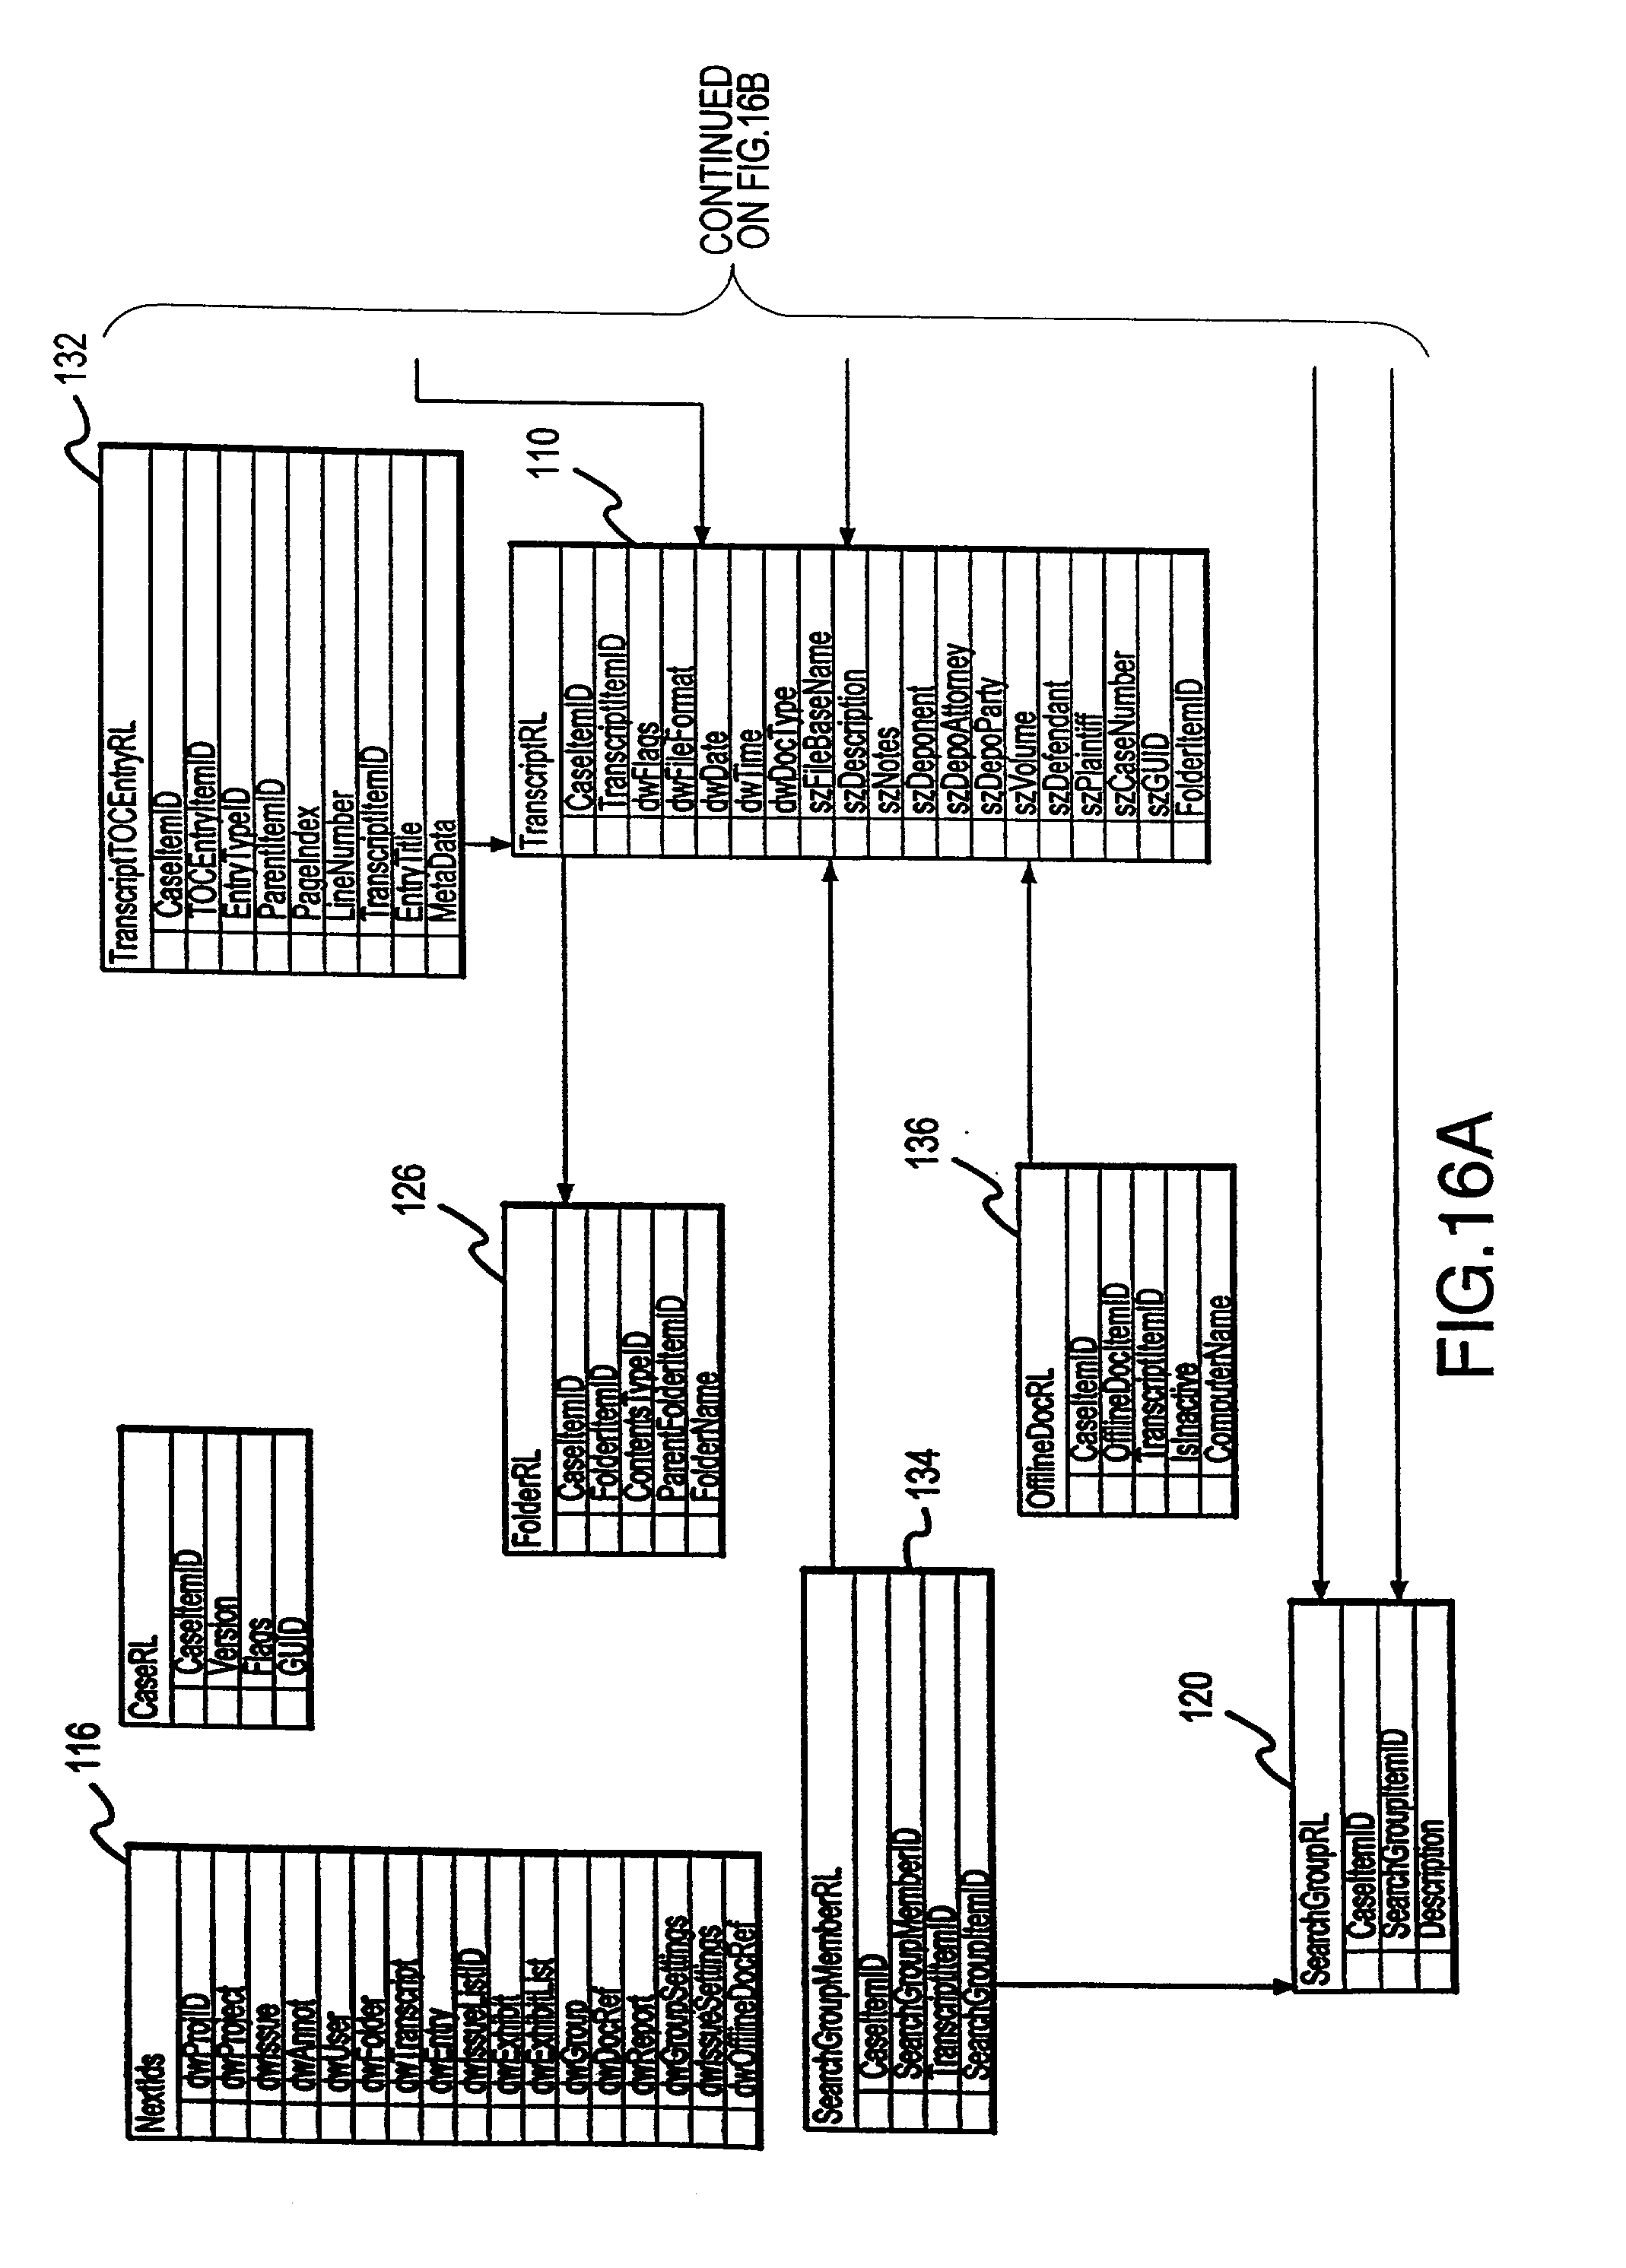 Patent Us20030055828 Methods For Synchronizing On Line And Off Database As A First Testi Come Up With The Following Circuit Drawing